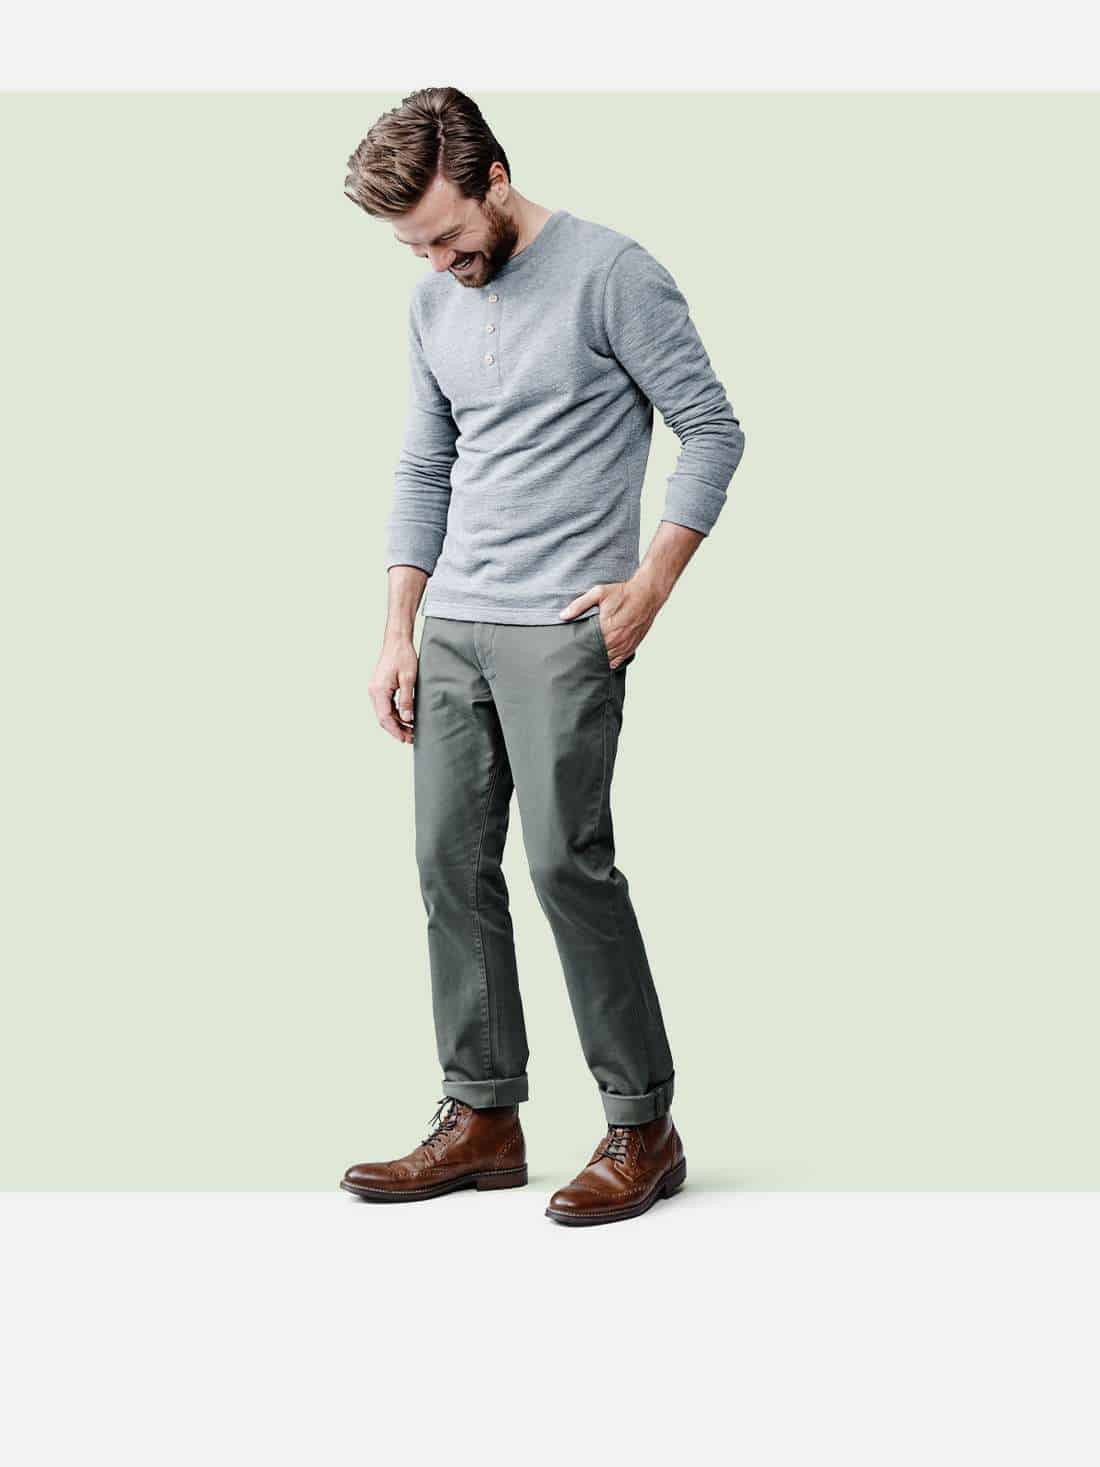 Target's New Men's Line Goodfellow & Co Fitting Room